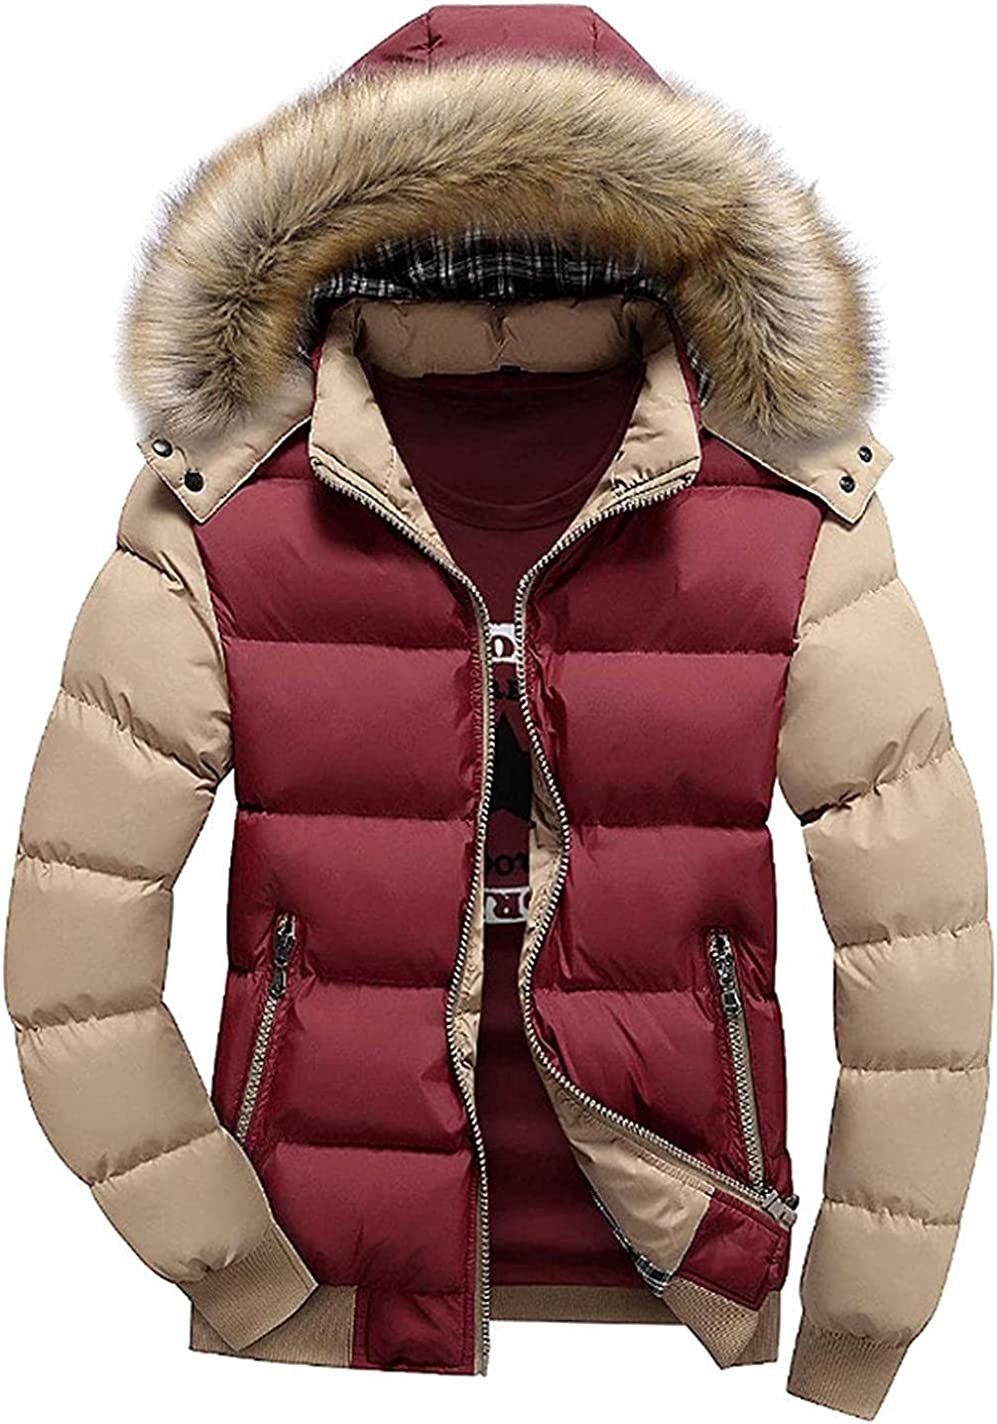 Men's Full Zip Contrast Color Fur Trim Hooded Padding Puffer Jacket Outerwear